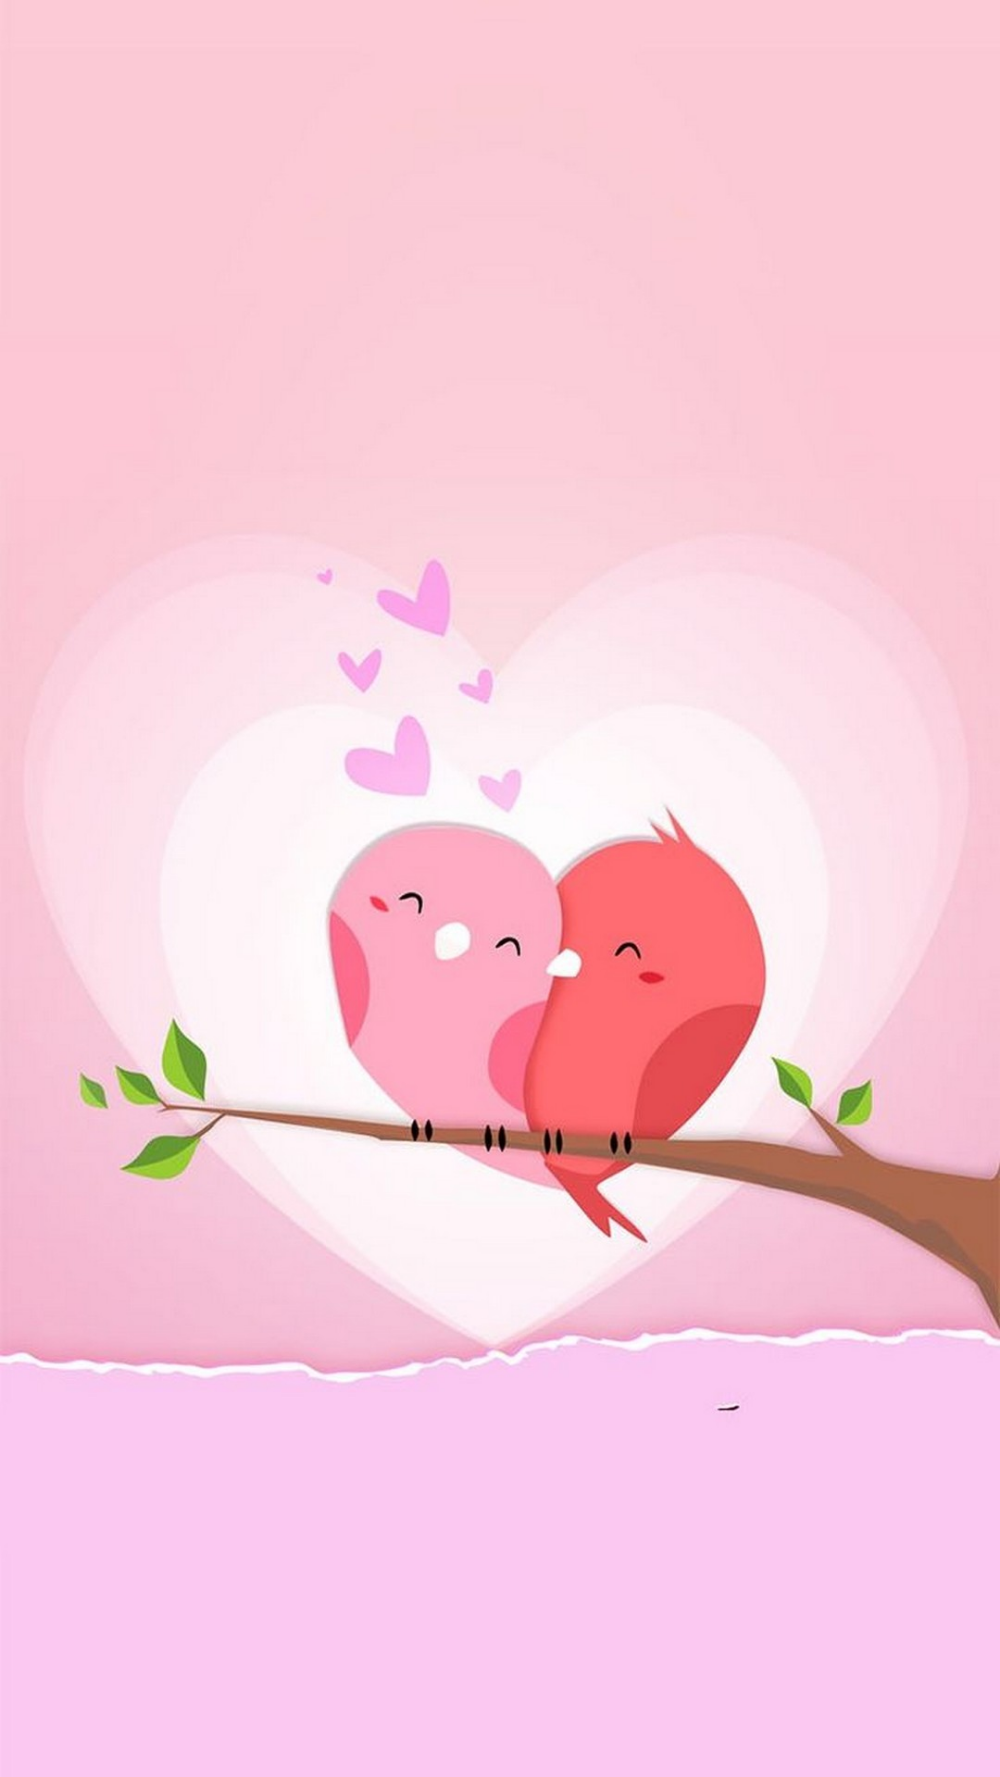 Romantic Images Of Valentines Day iPhone Wallpaper resolution 1080x1920